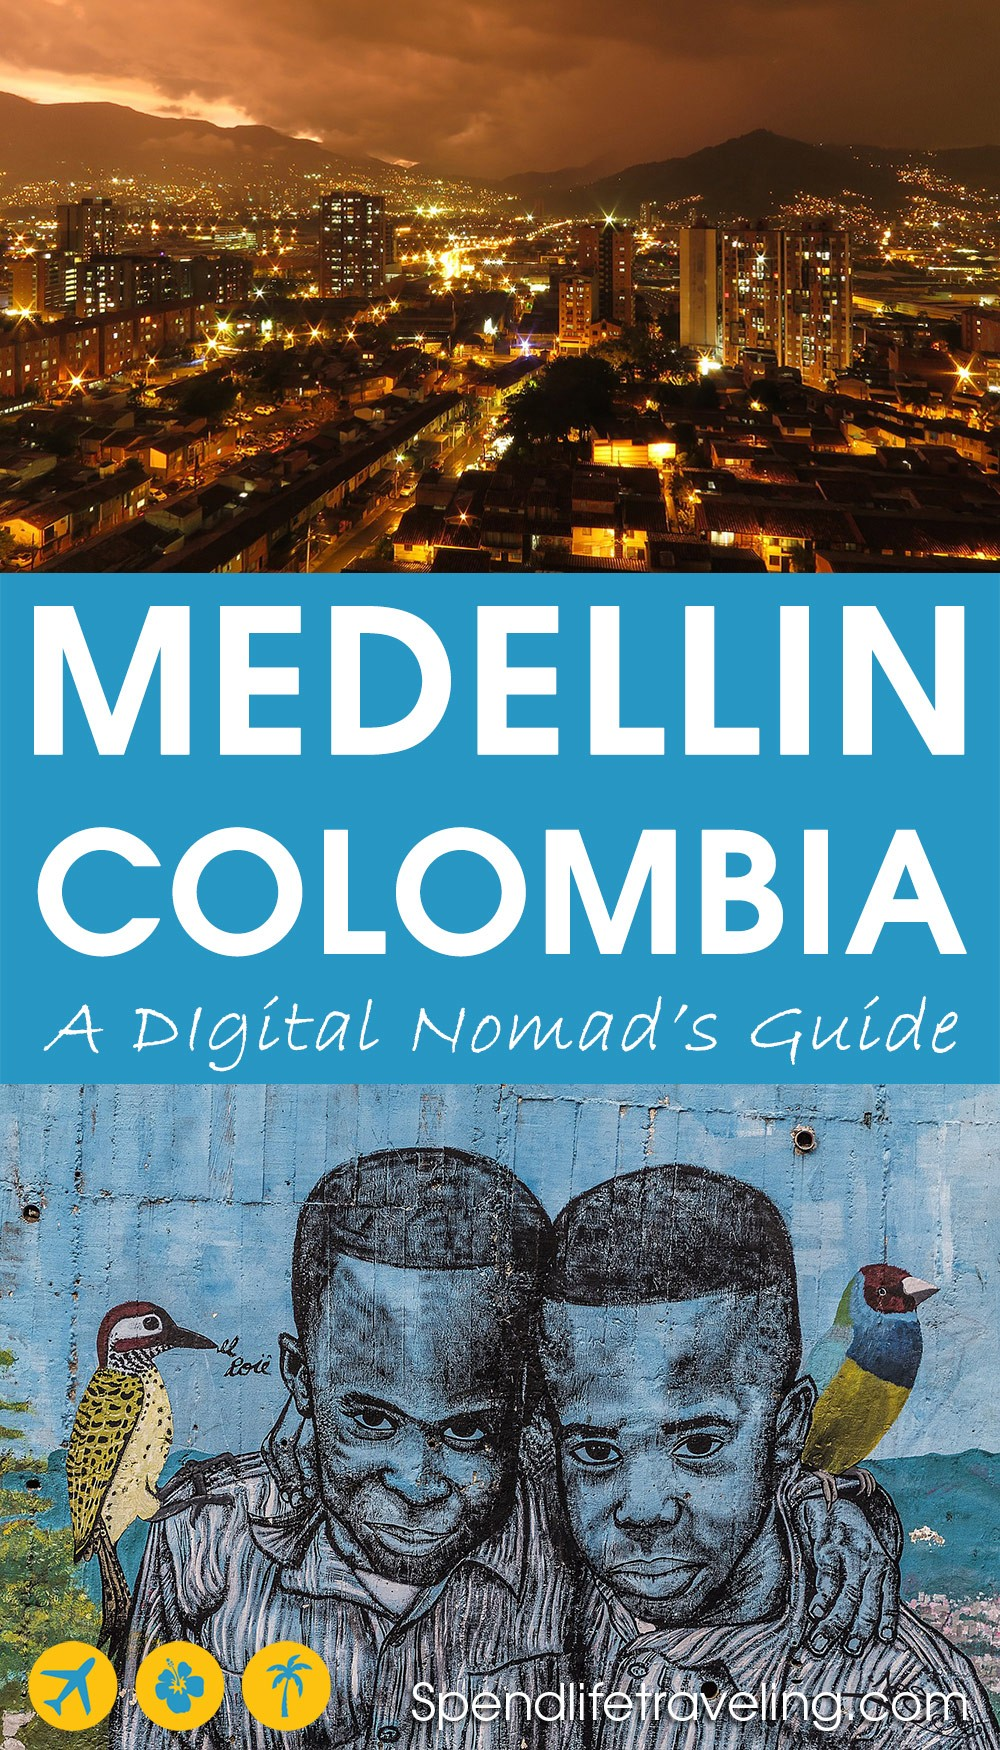 A digital nomad's guide to Medellin, Colombia. Are you thinking about spendling some time in Medellin to work remotely? Check out this practical guide with tips about where to stay, where to work from, what to do and more! #Medellin #digitalnomad #remotework #nomad #workremotely #spendlifetraveling